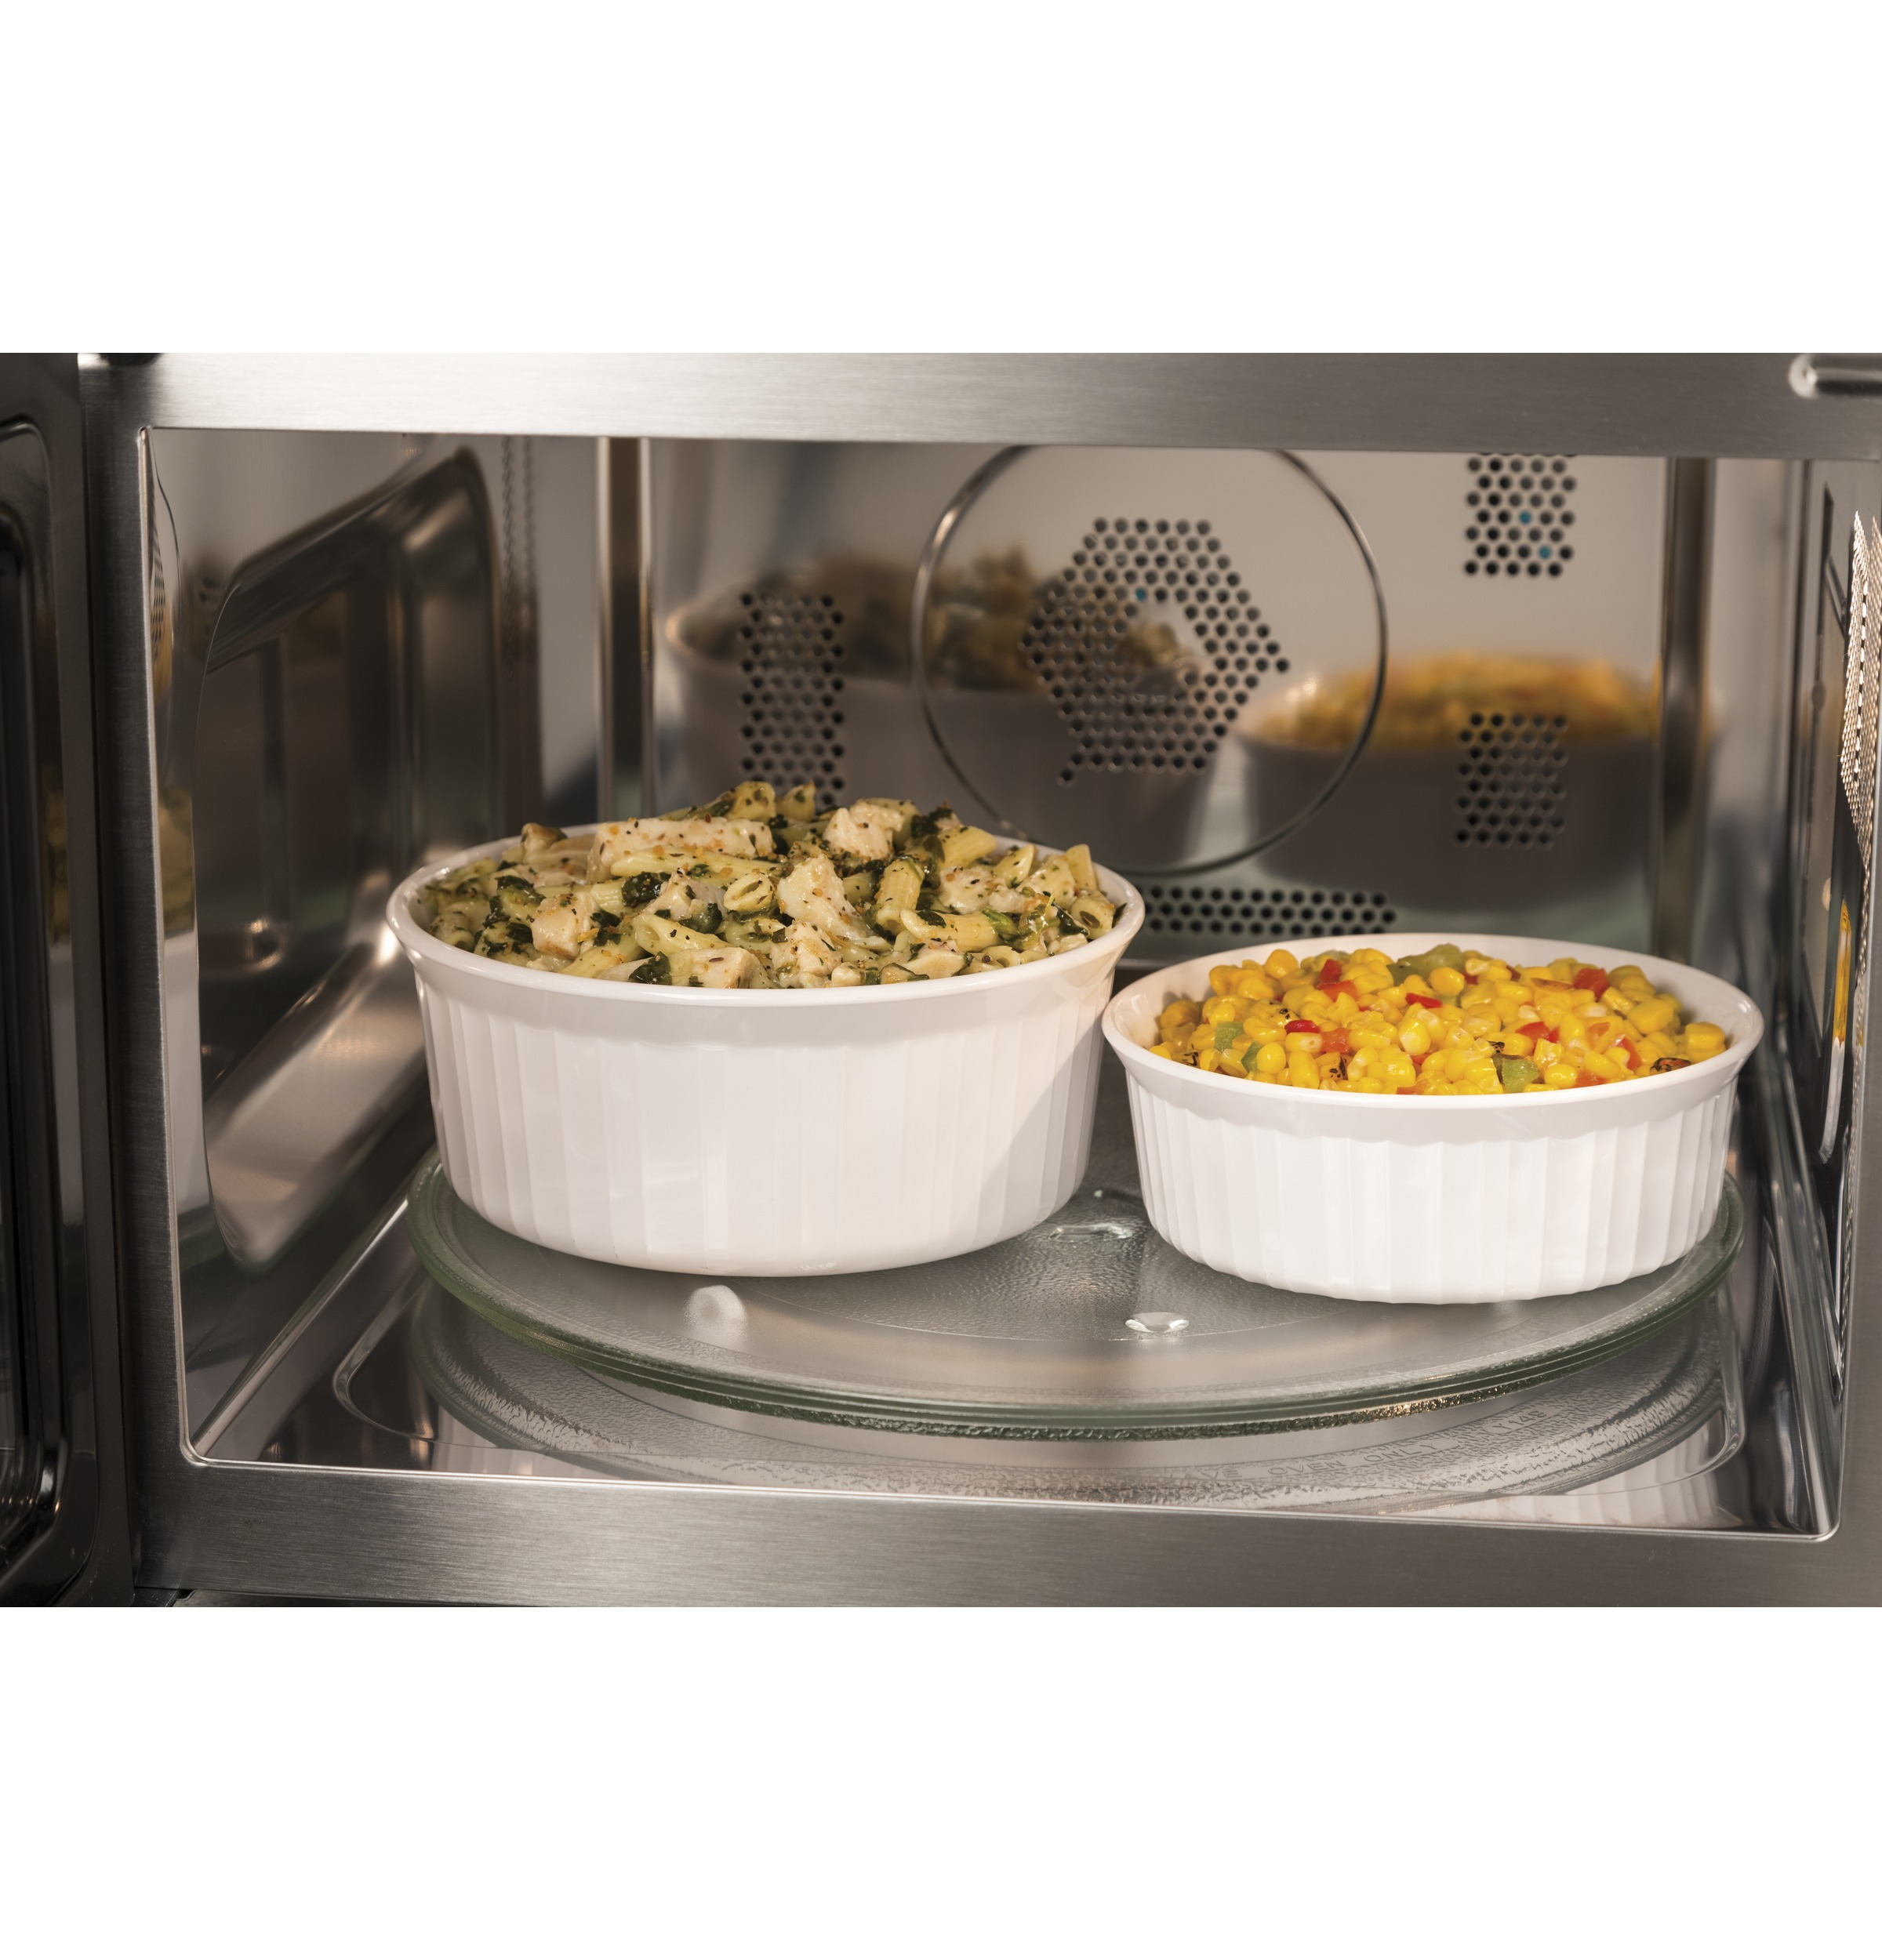 ge monogram convection microwave oven manual